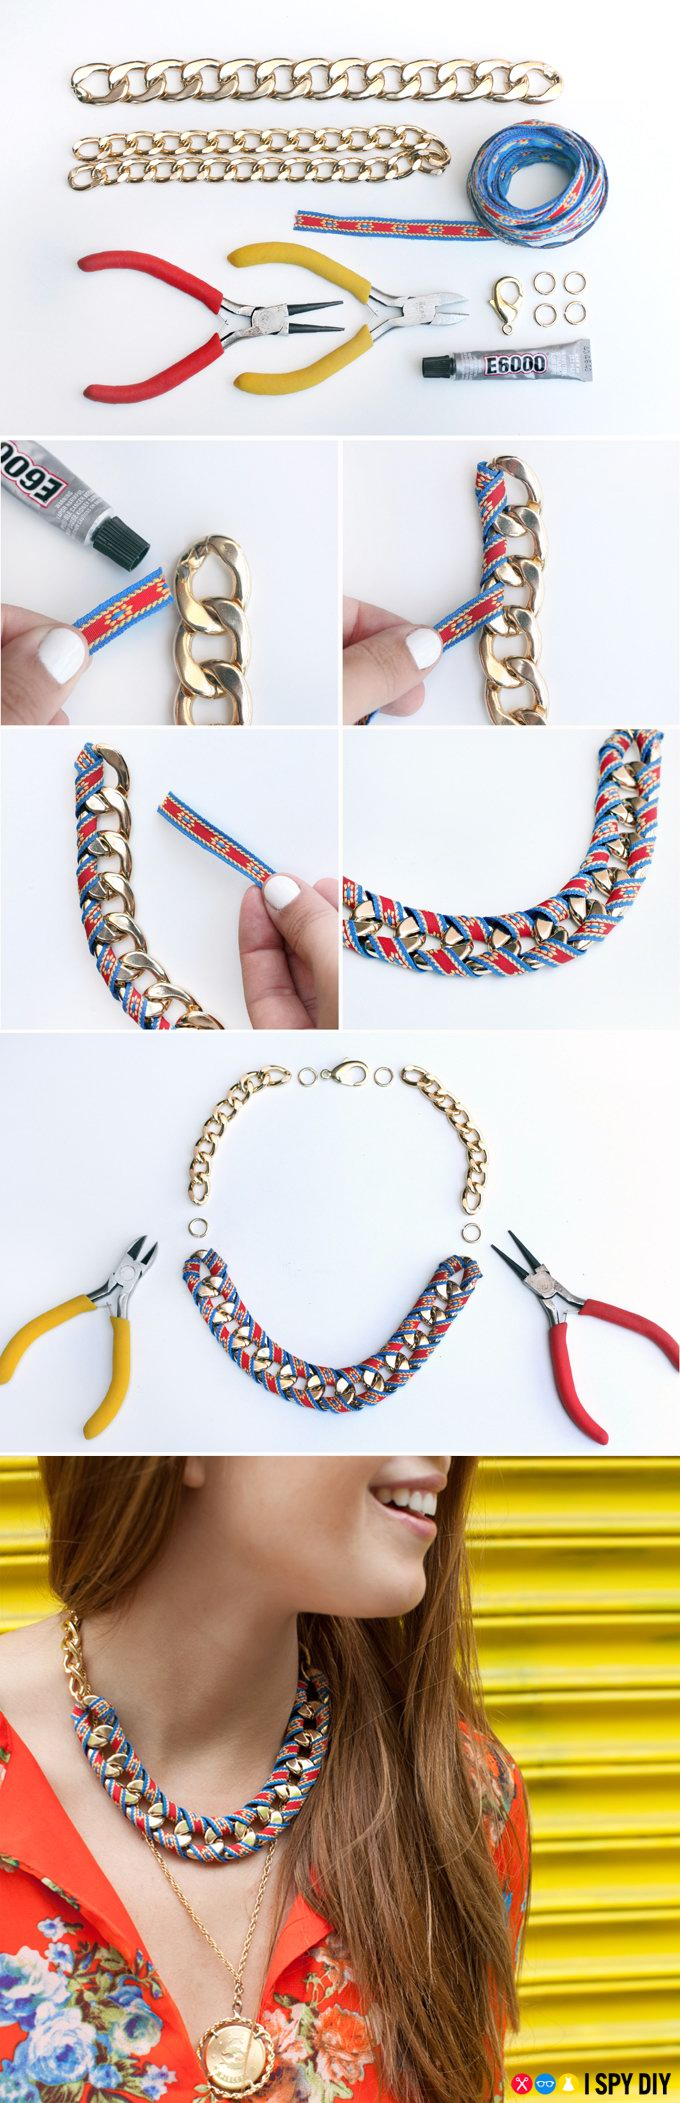 DIY Chain Ribbon Necklace